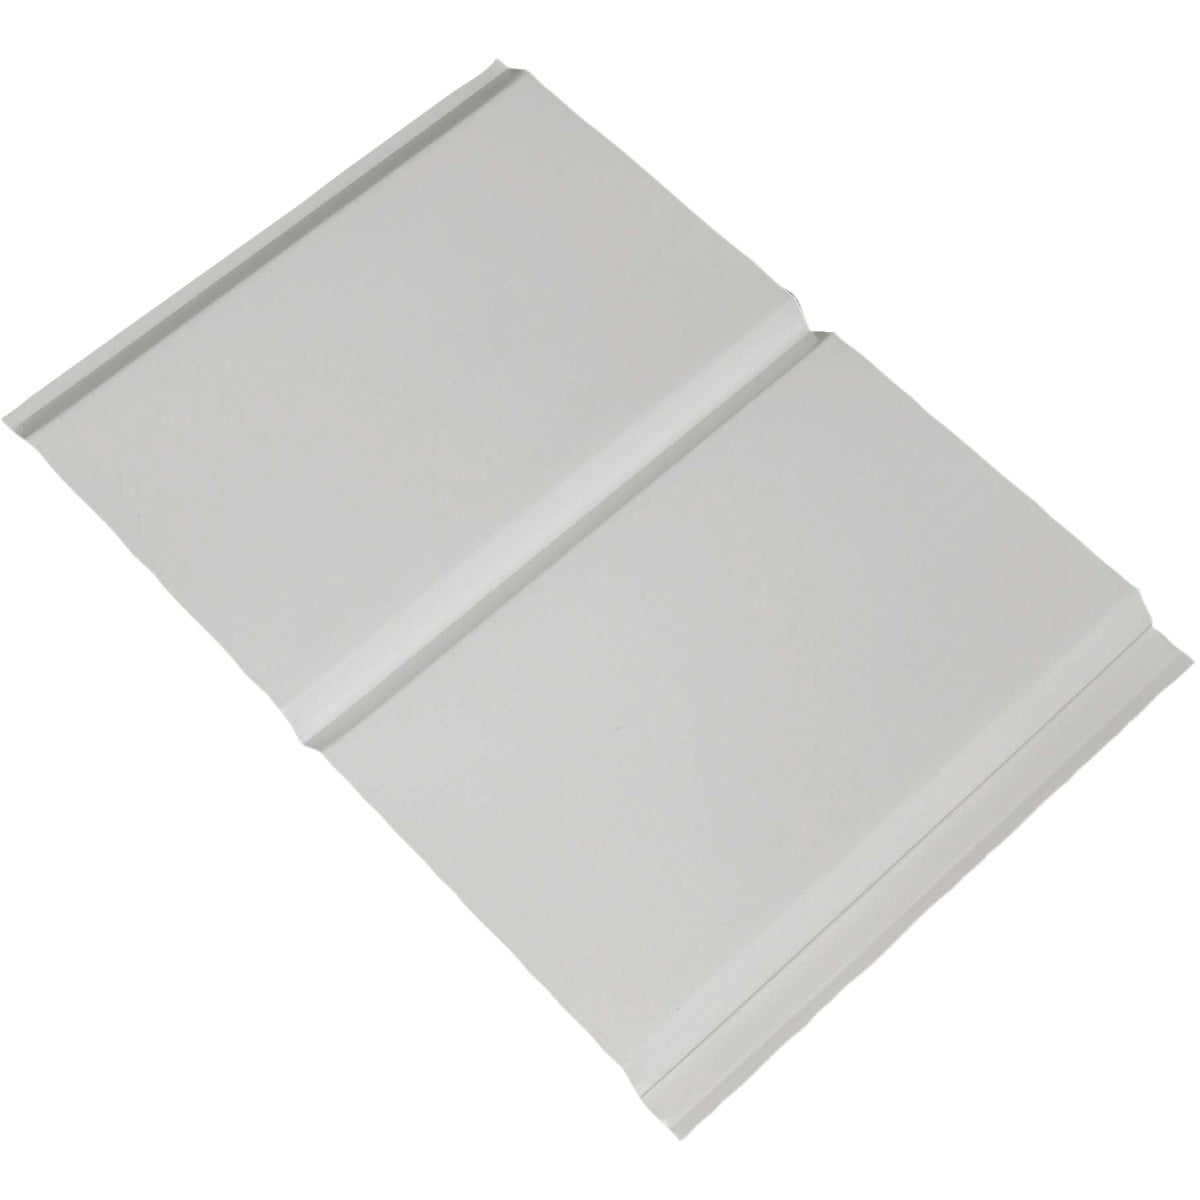 """12"""" WHT SLD ALUM SOFFIT - 77101 by Amerimax Home Prod"""